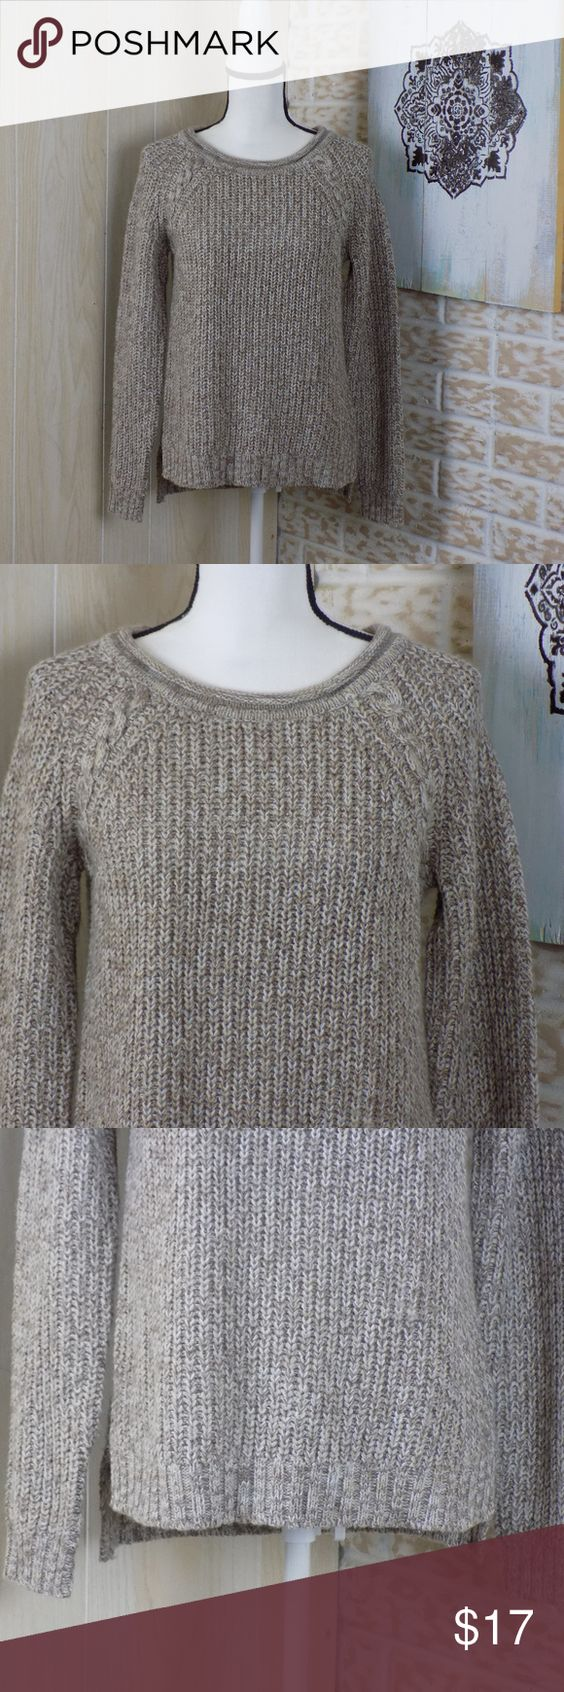 Pink Rose Tan White Knitted Scoop Neck Sweater